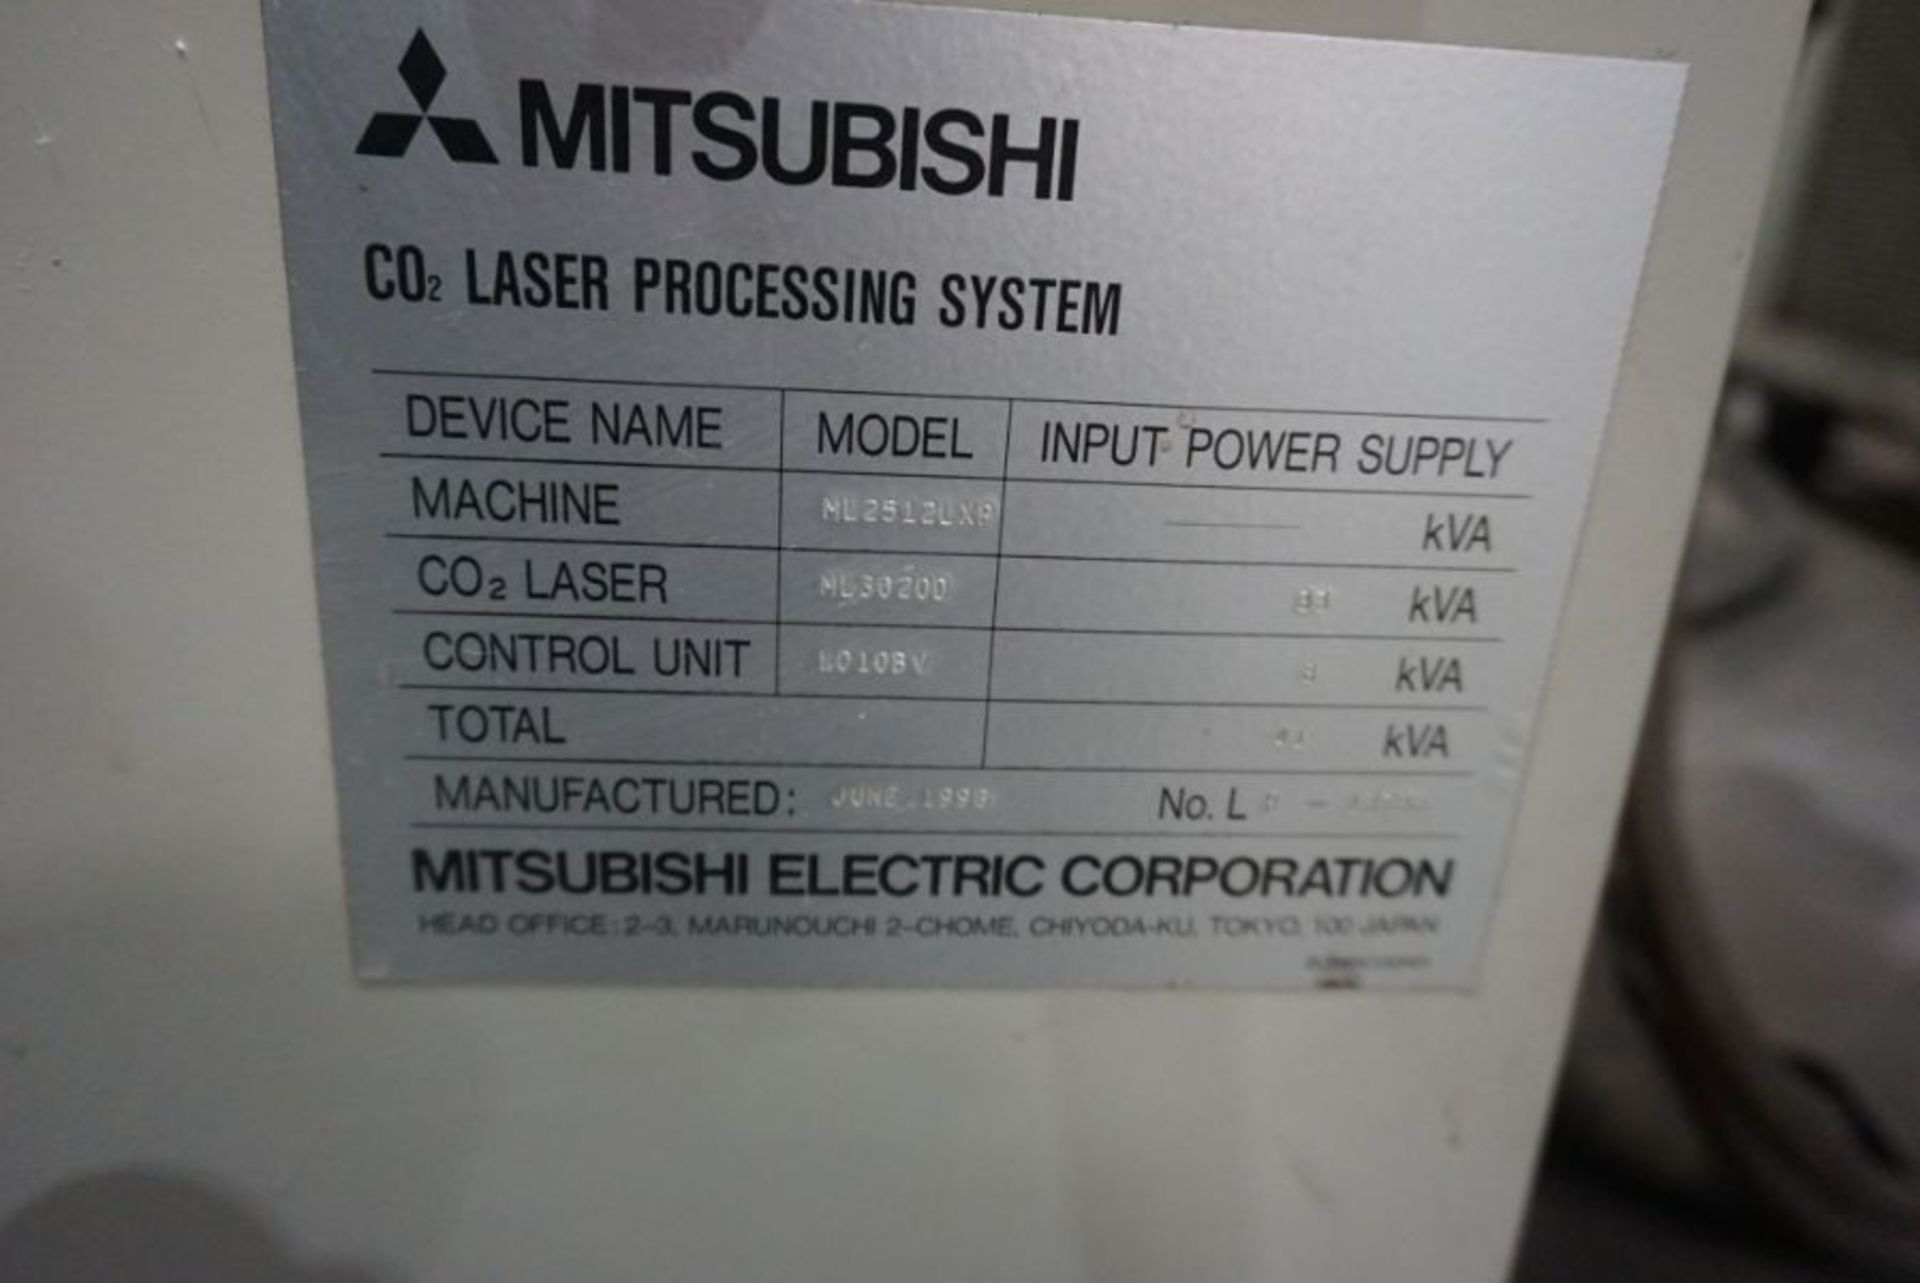 Mitsubishi ML2512LXP CO2 Laser, 4'x8', 3000 watt, s/n LH13788, New 1996 - Image 6 of 6